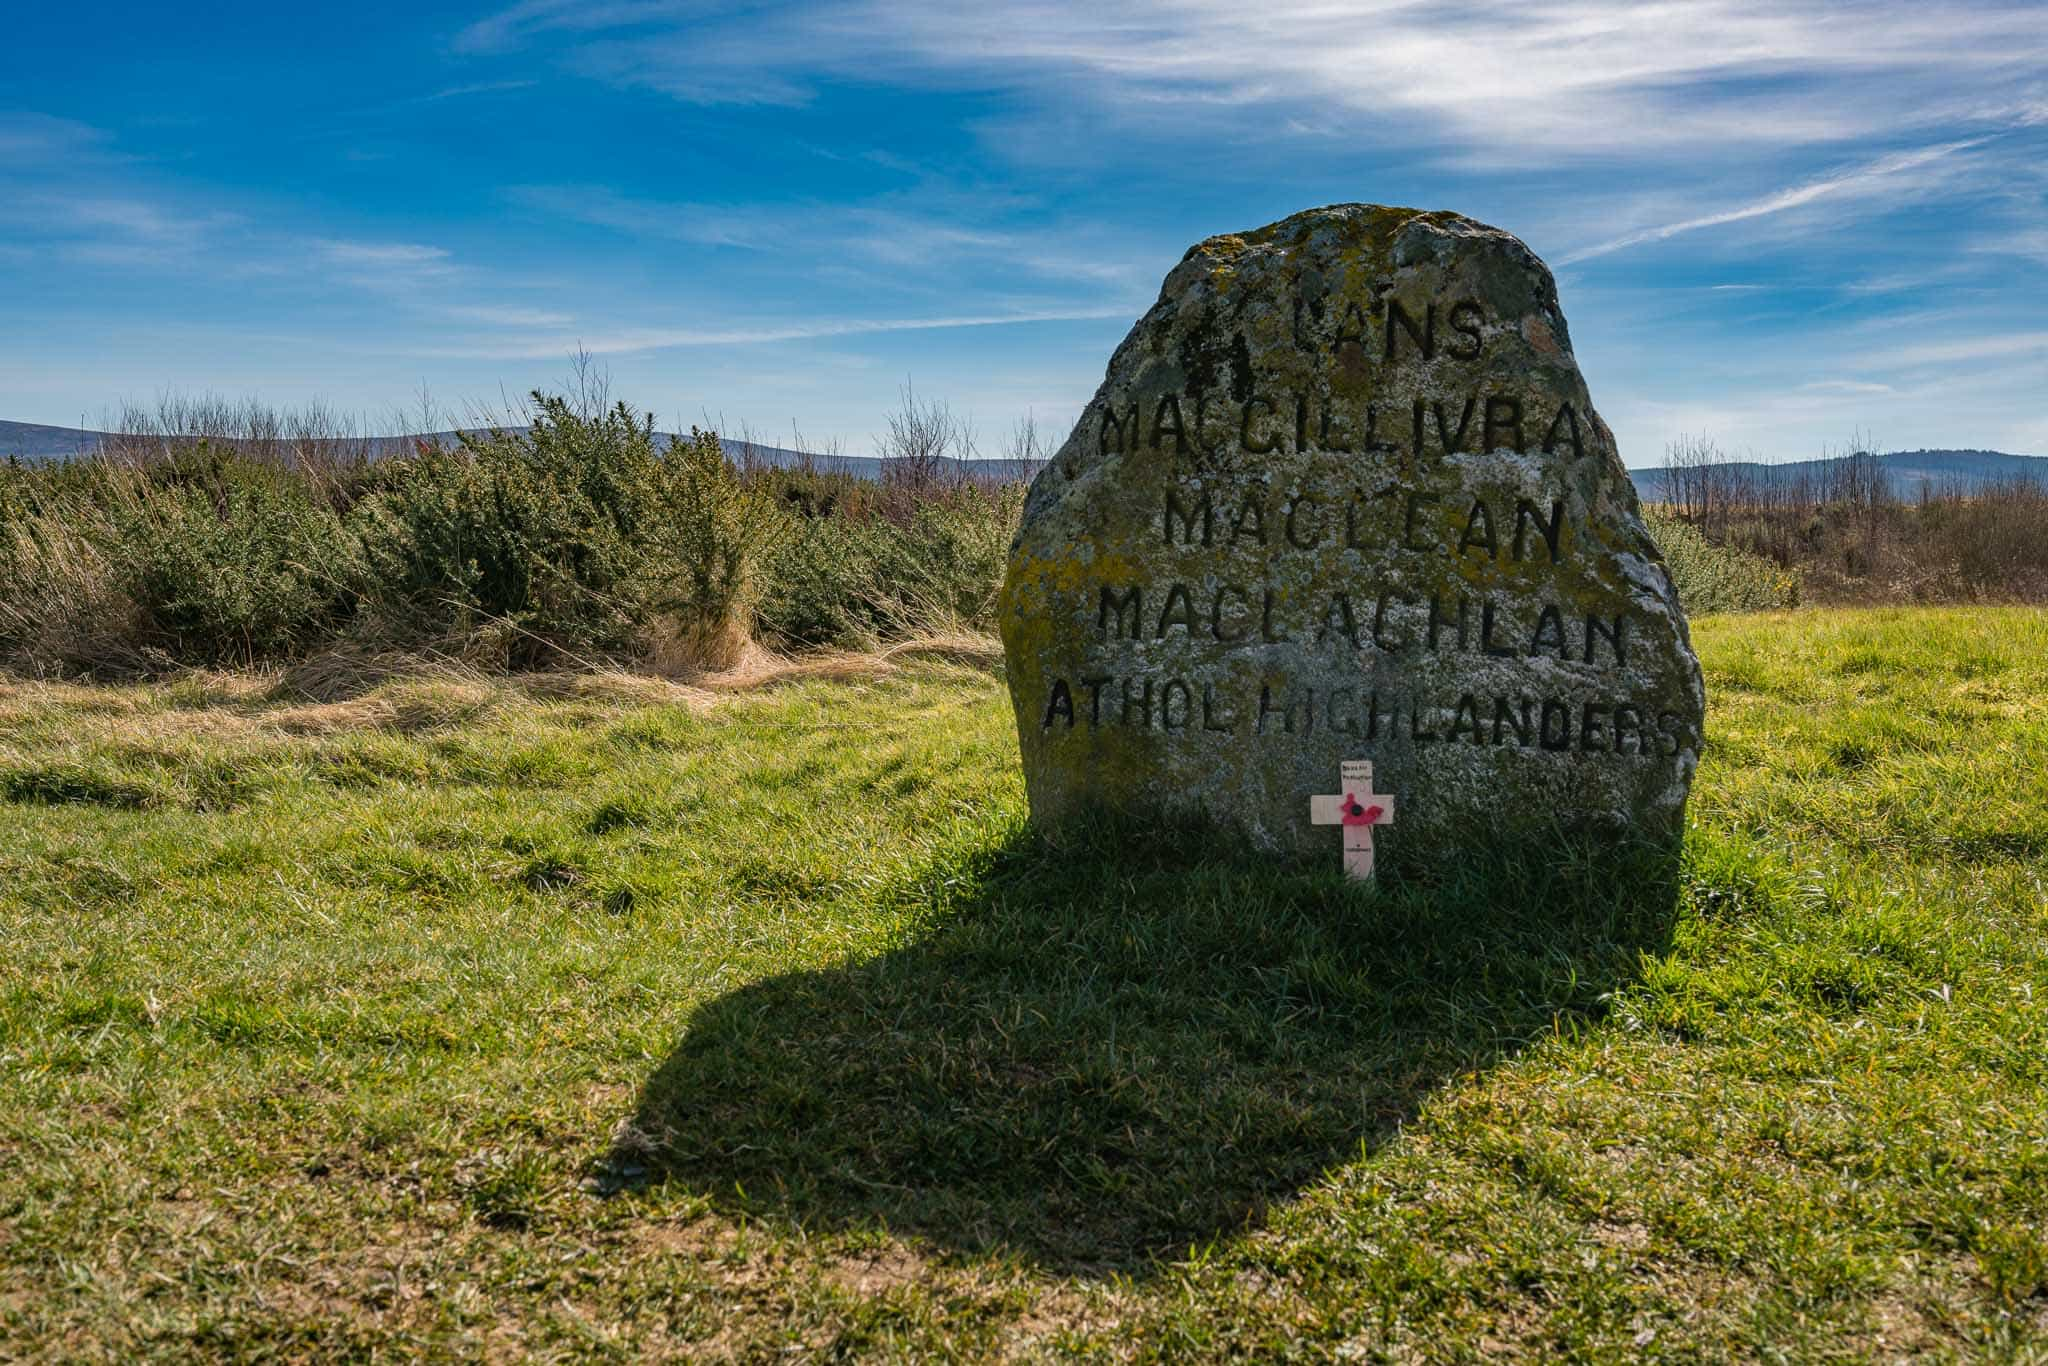 Things to do in Inverness: Learn about Scottish History at the Culloden Battlefield